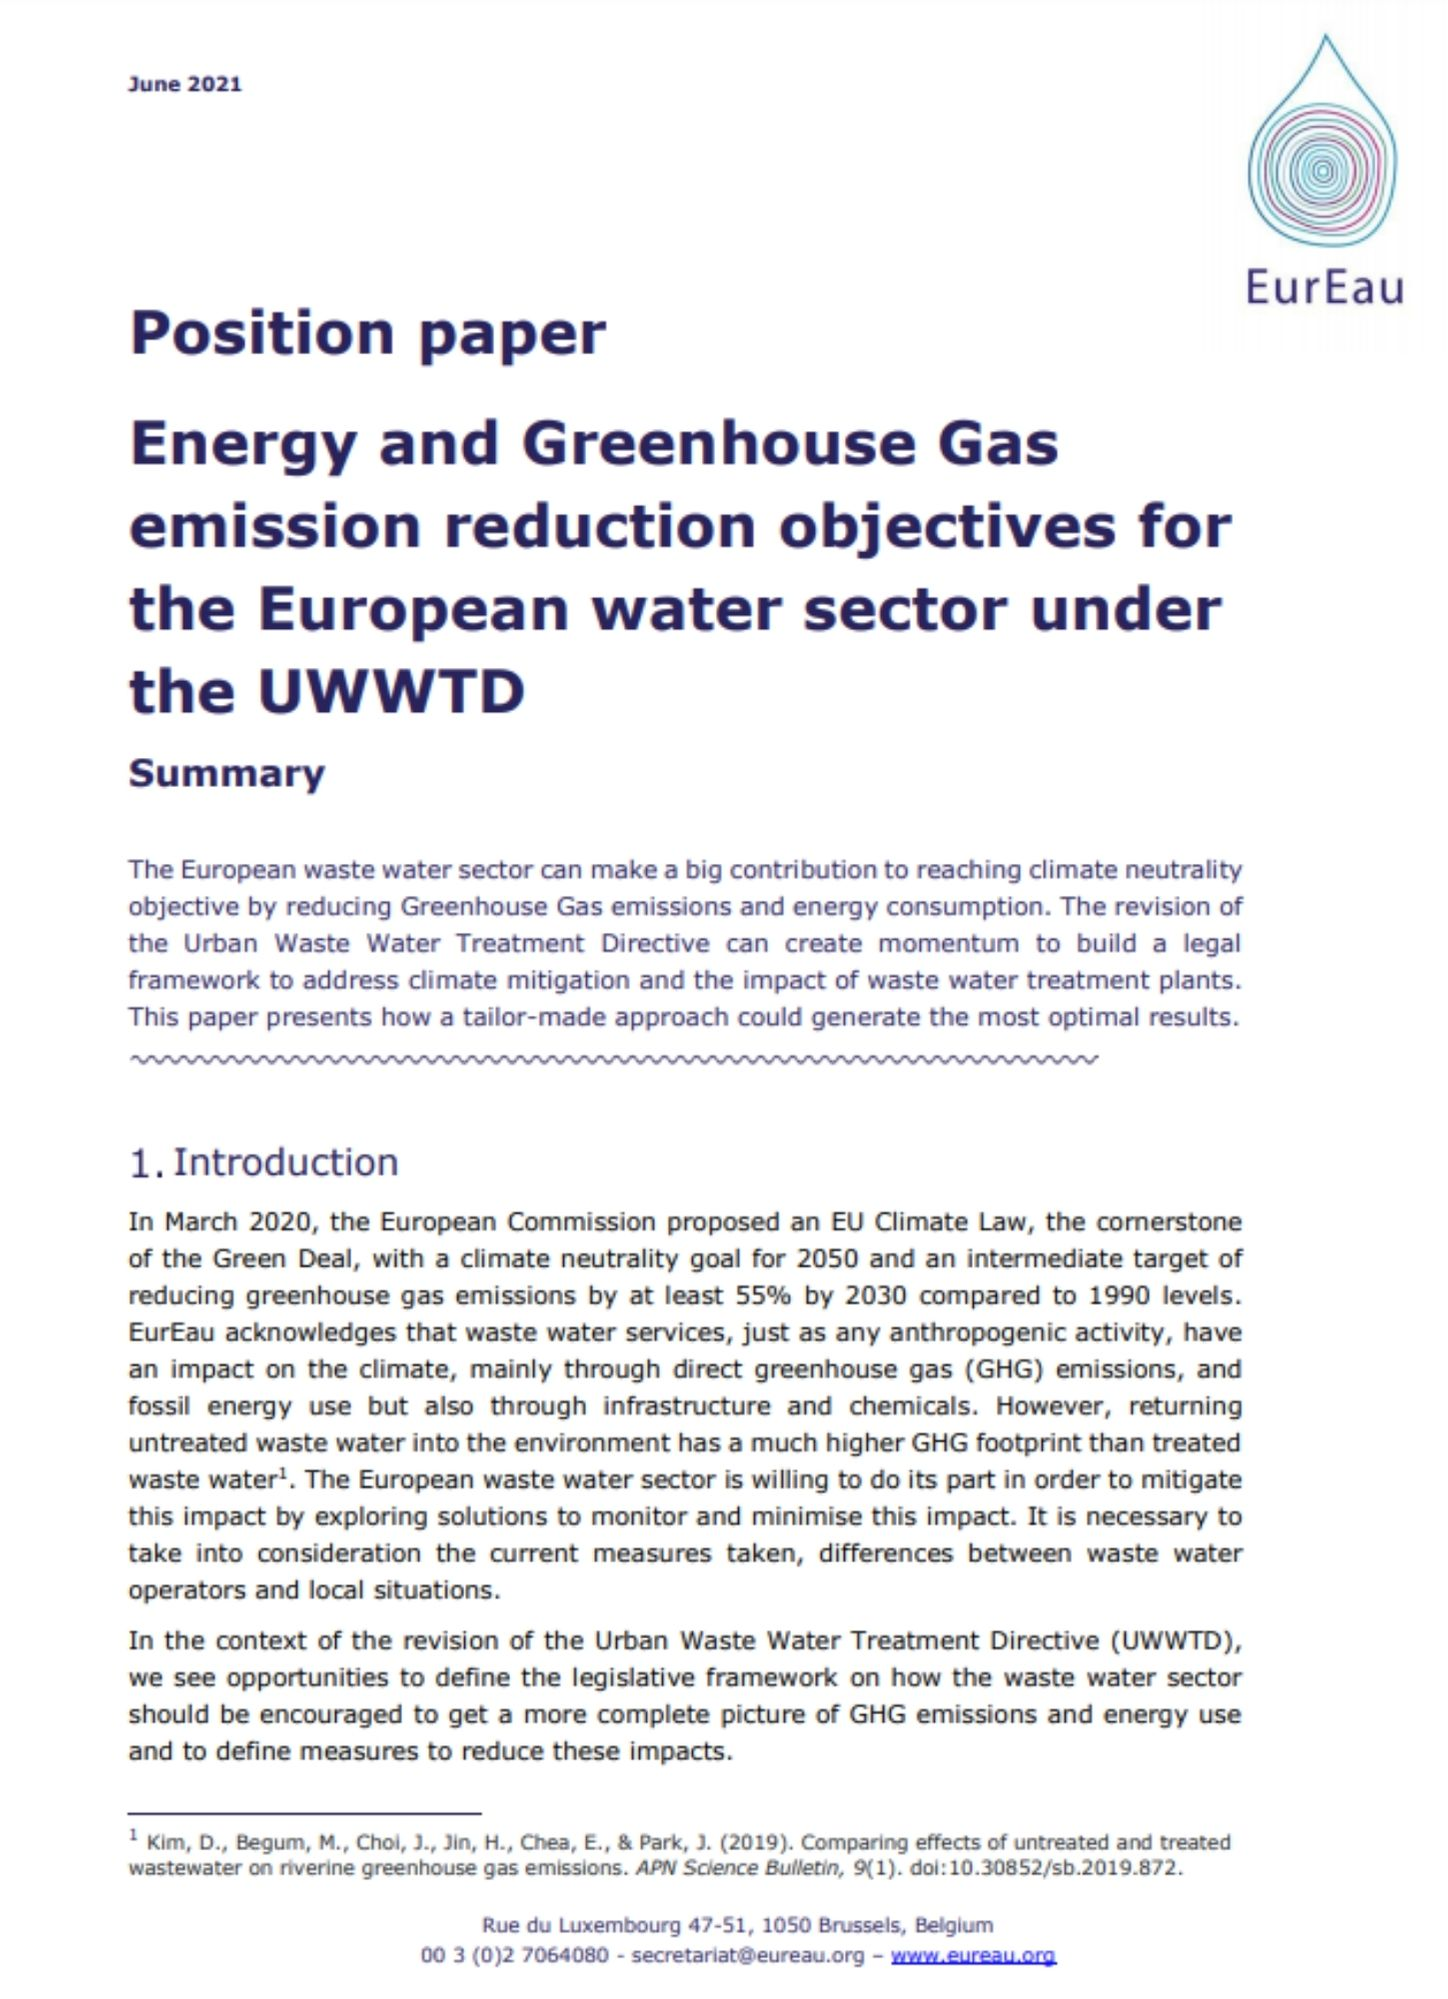 Position paper on climate mitigation in the UWWTD